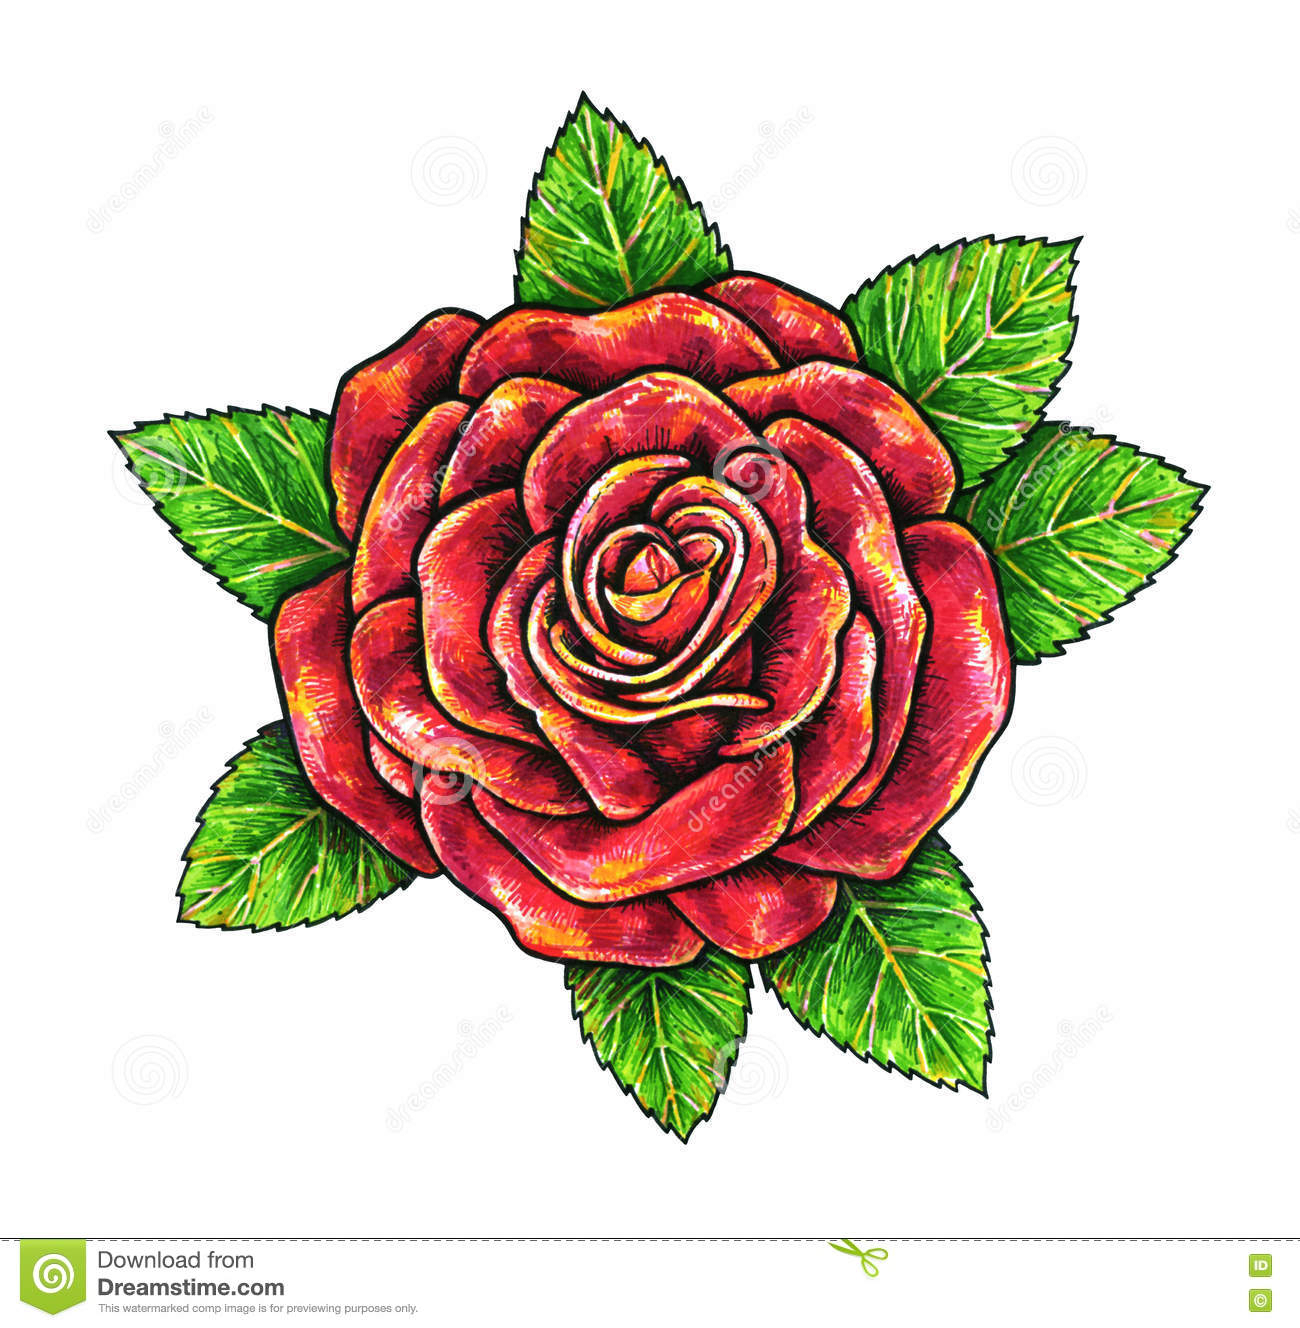 Rose Flower Drawing at GetDrawings.com | Free for personal use Rose ...